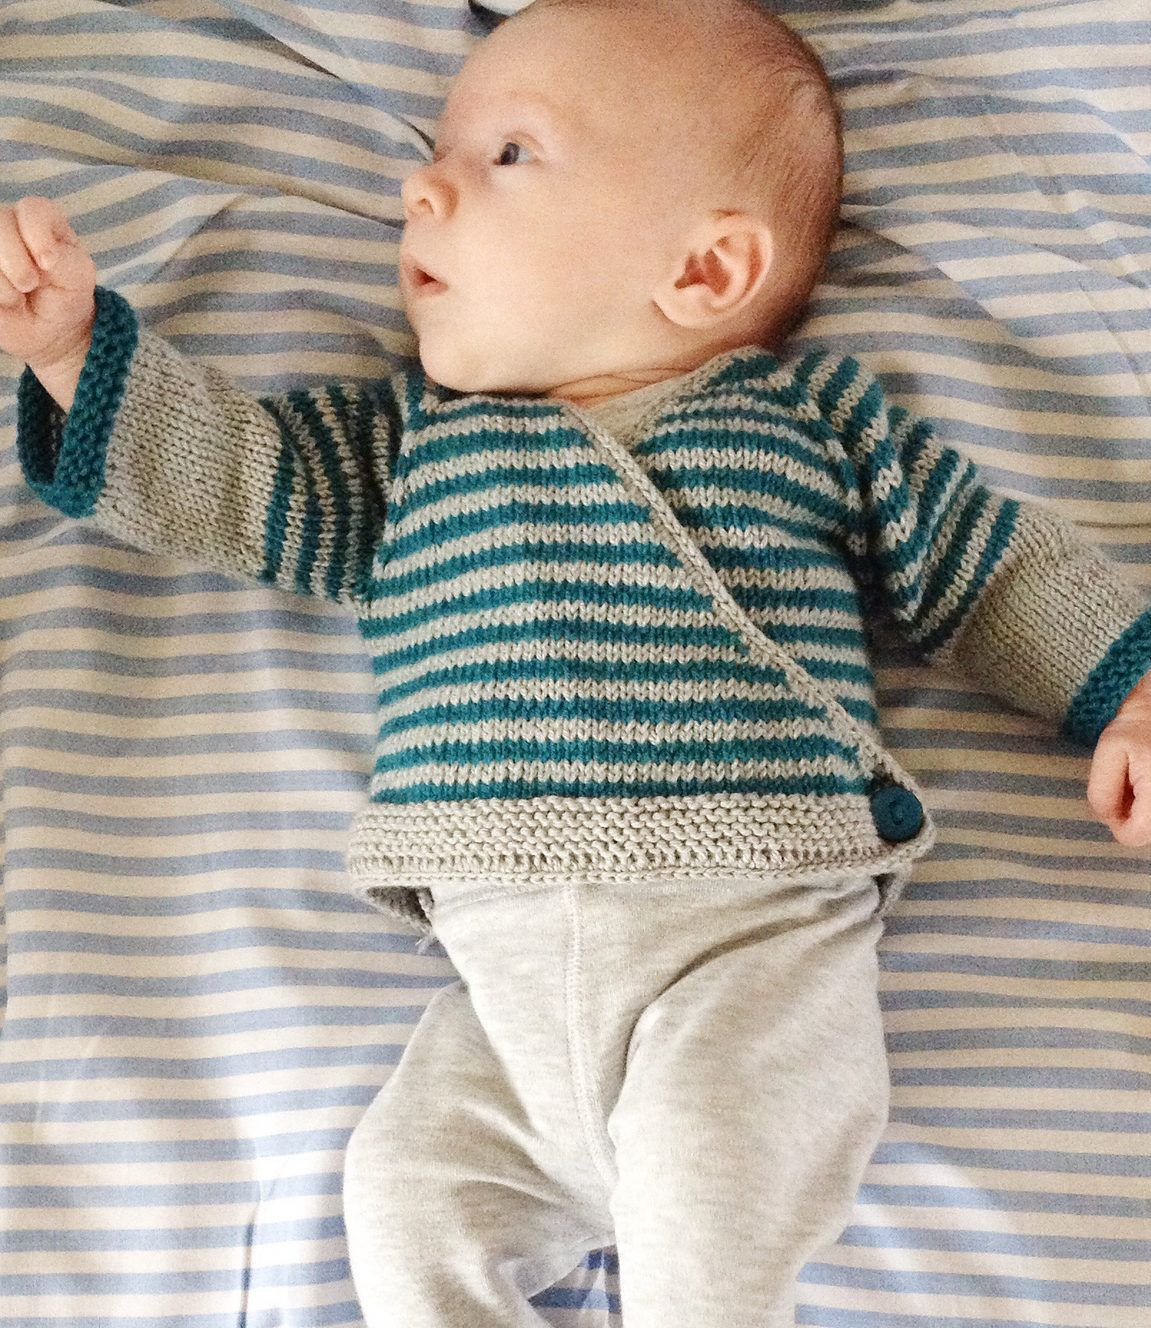 588185bc32ef Free Knitting Pattern for Easy Striped Baby Cardigan - Easy wrap ...